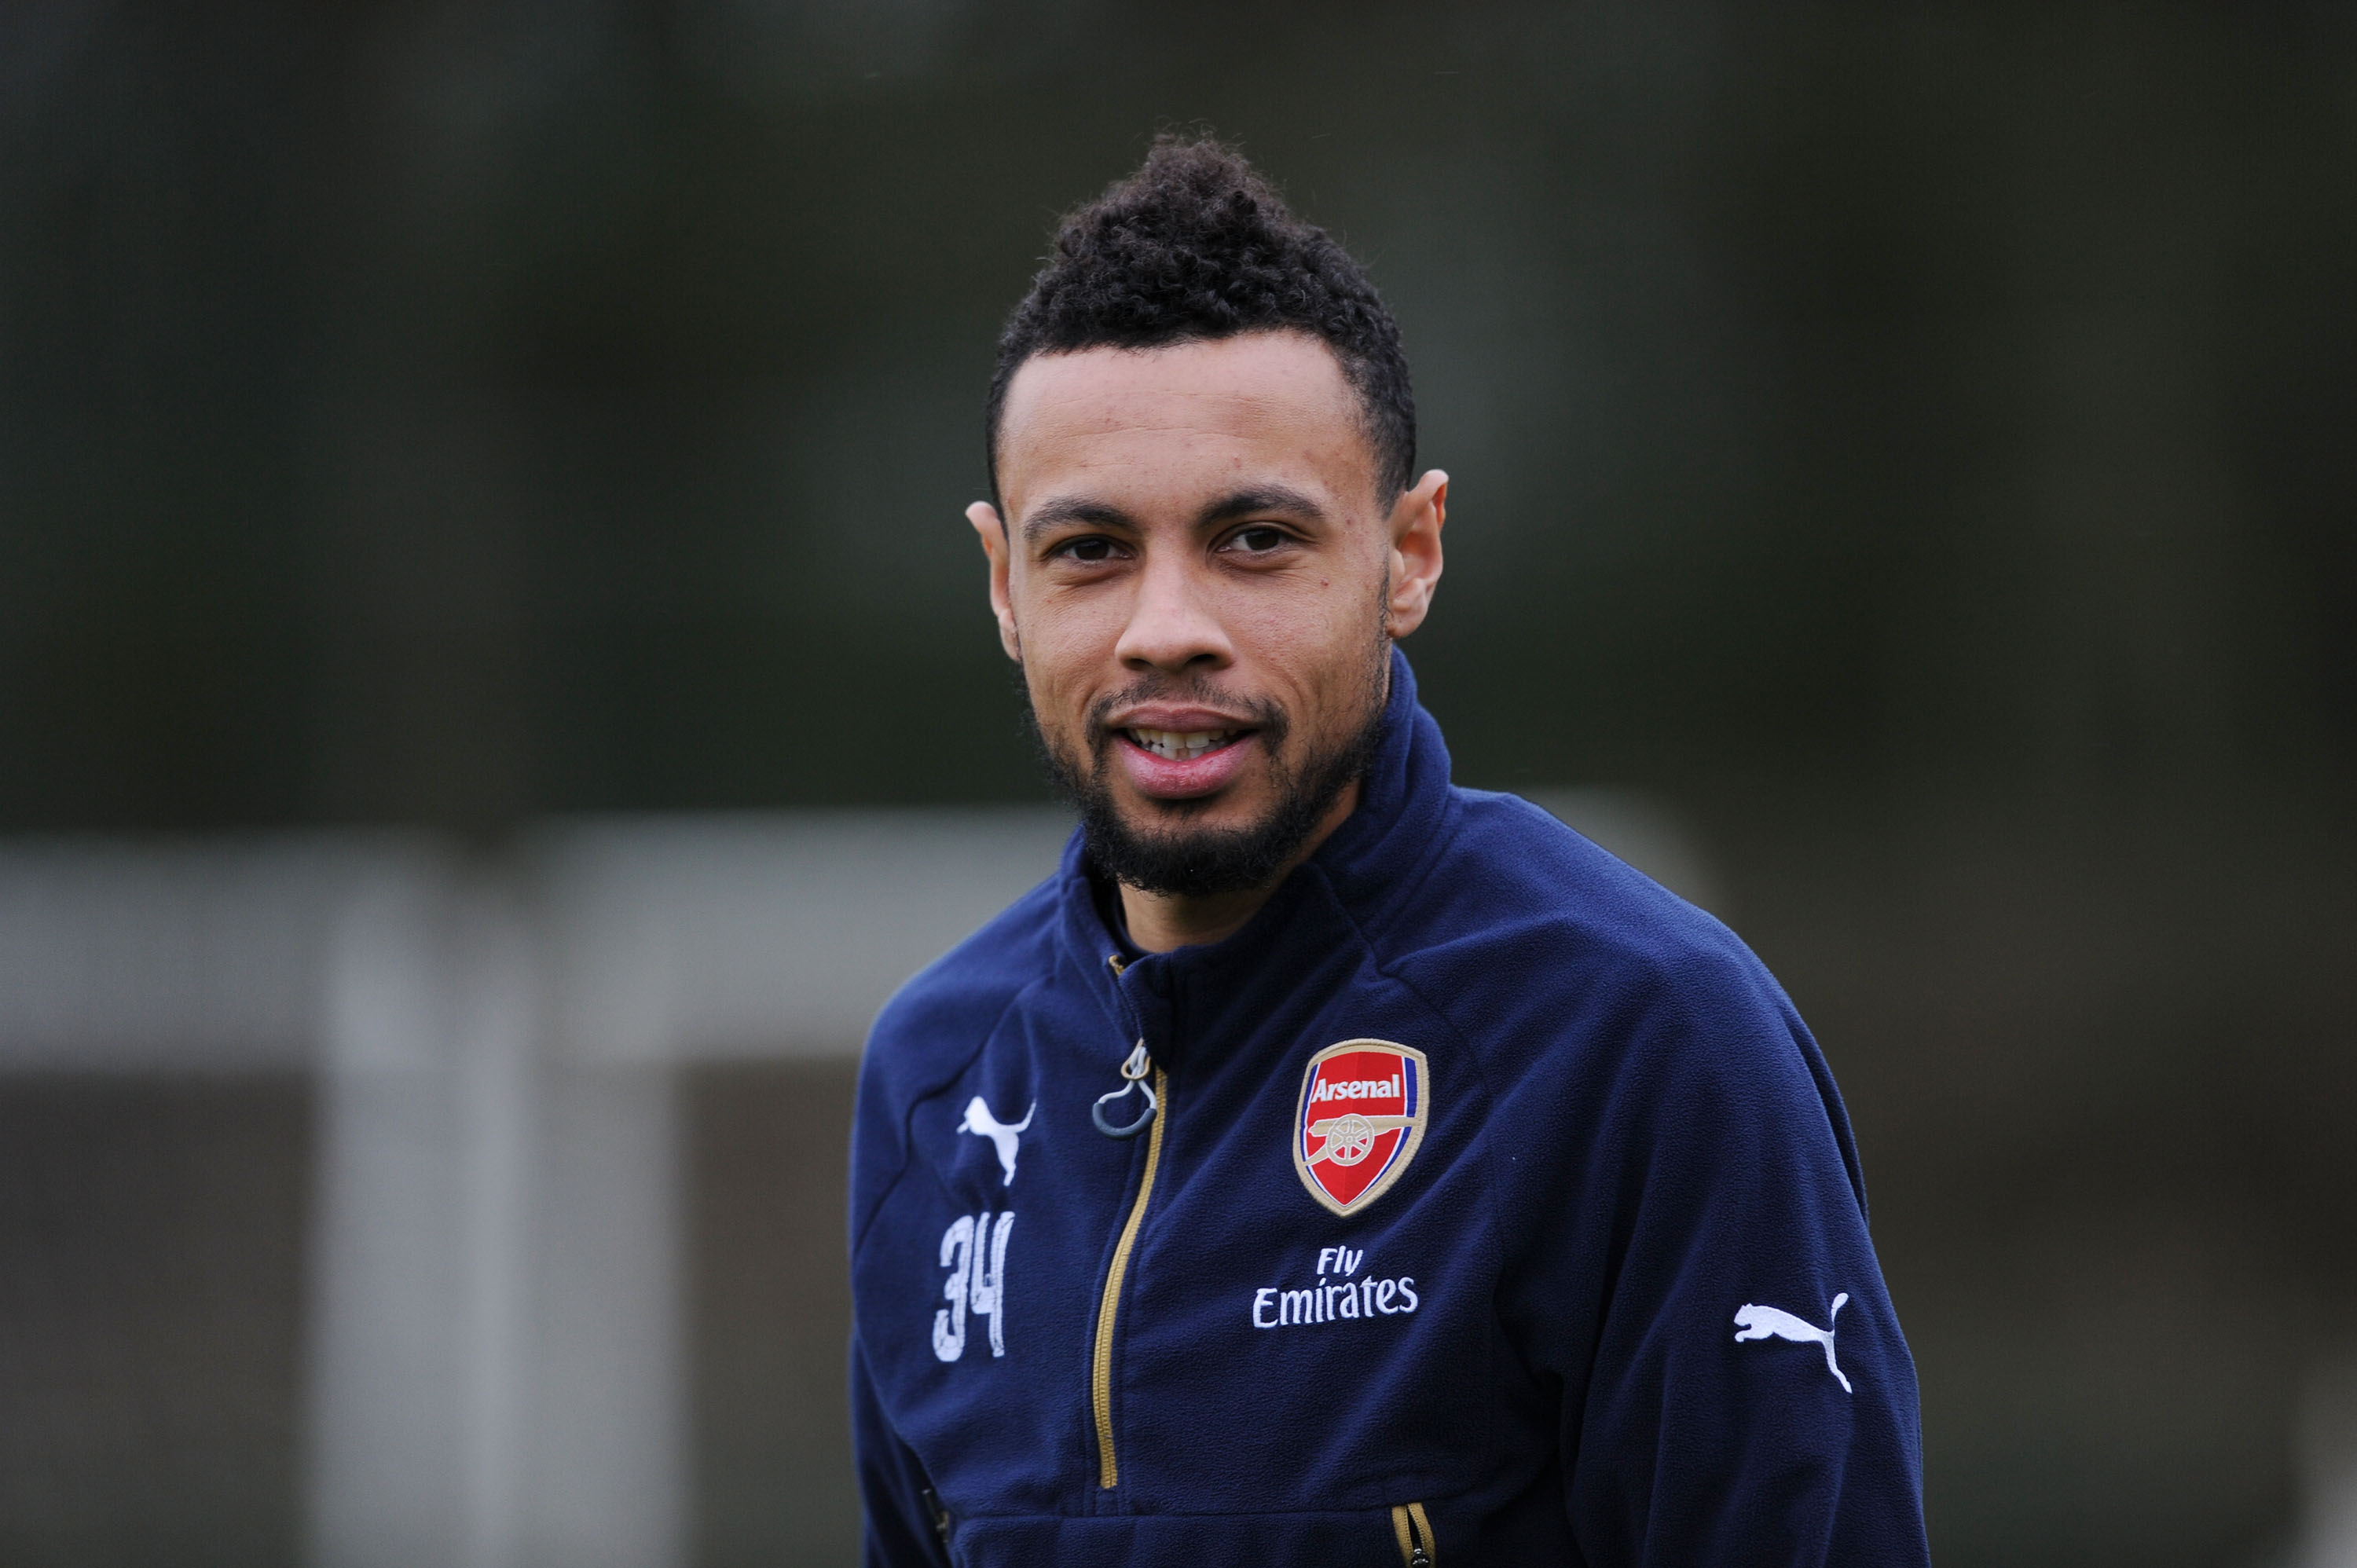 Francis Coquelin is best in Premier League, says Gilberto Silva